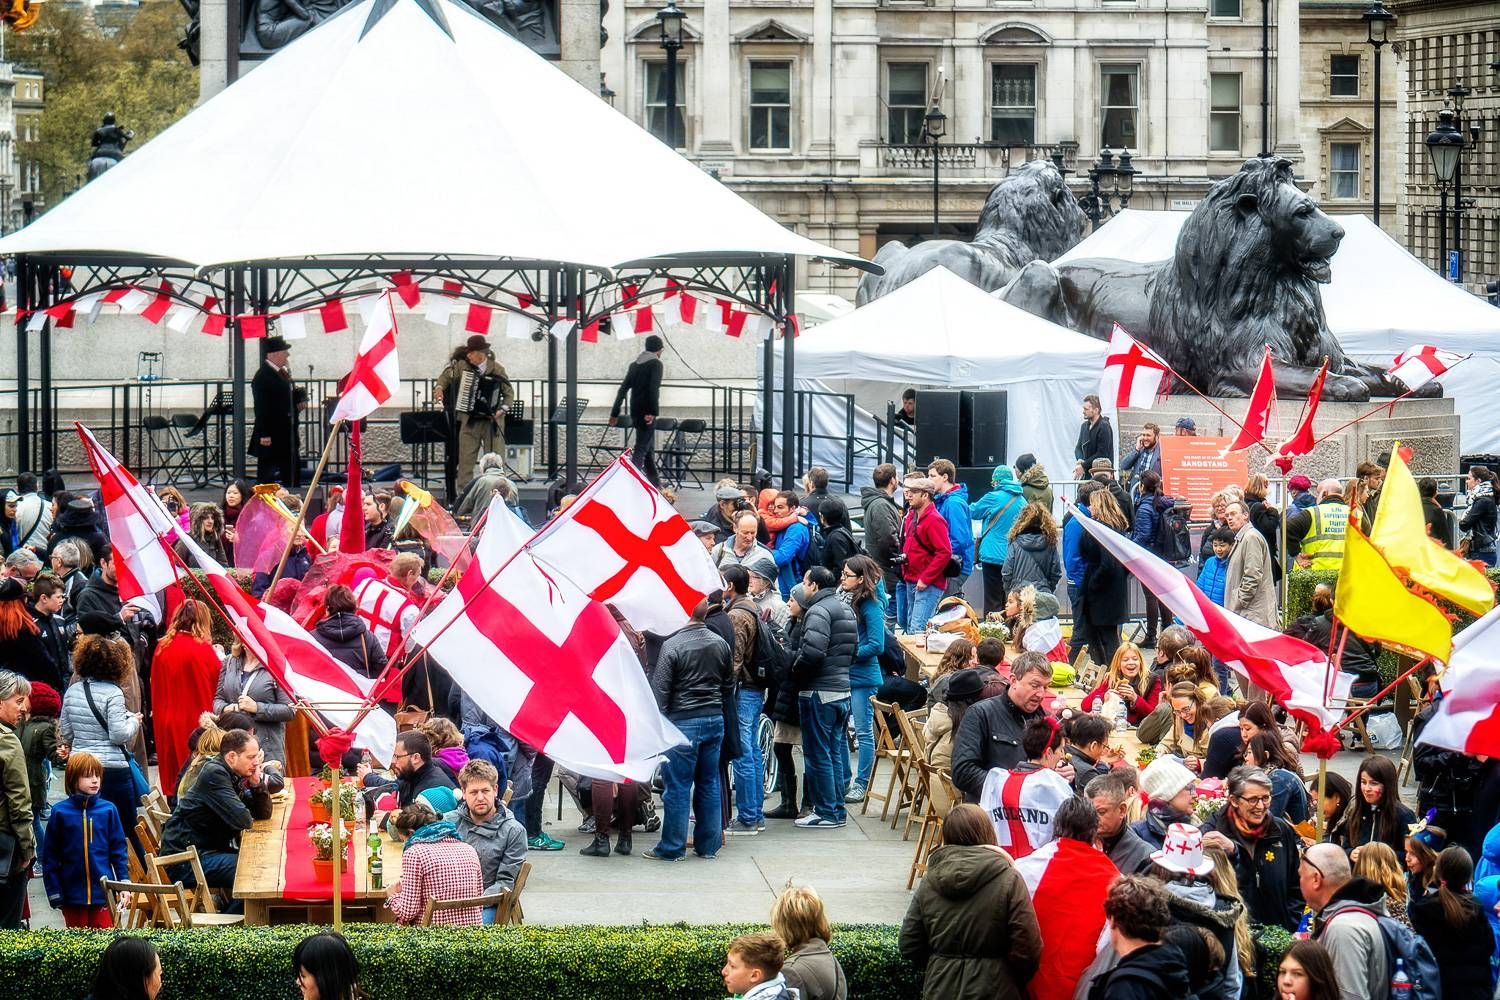 Image of people gathered for St. George's day in Trafalgar Square with tents and English flags.